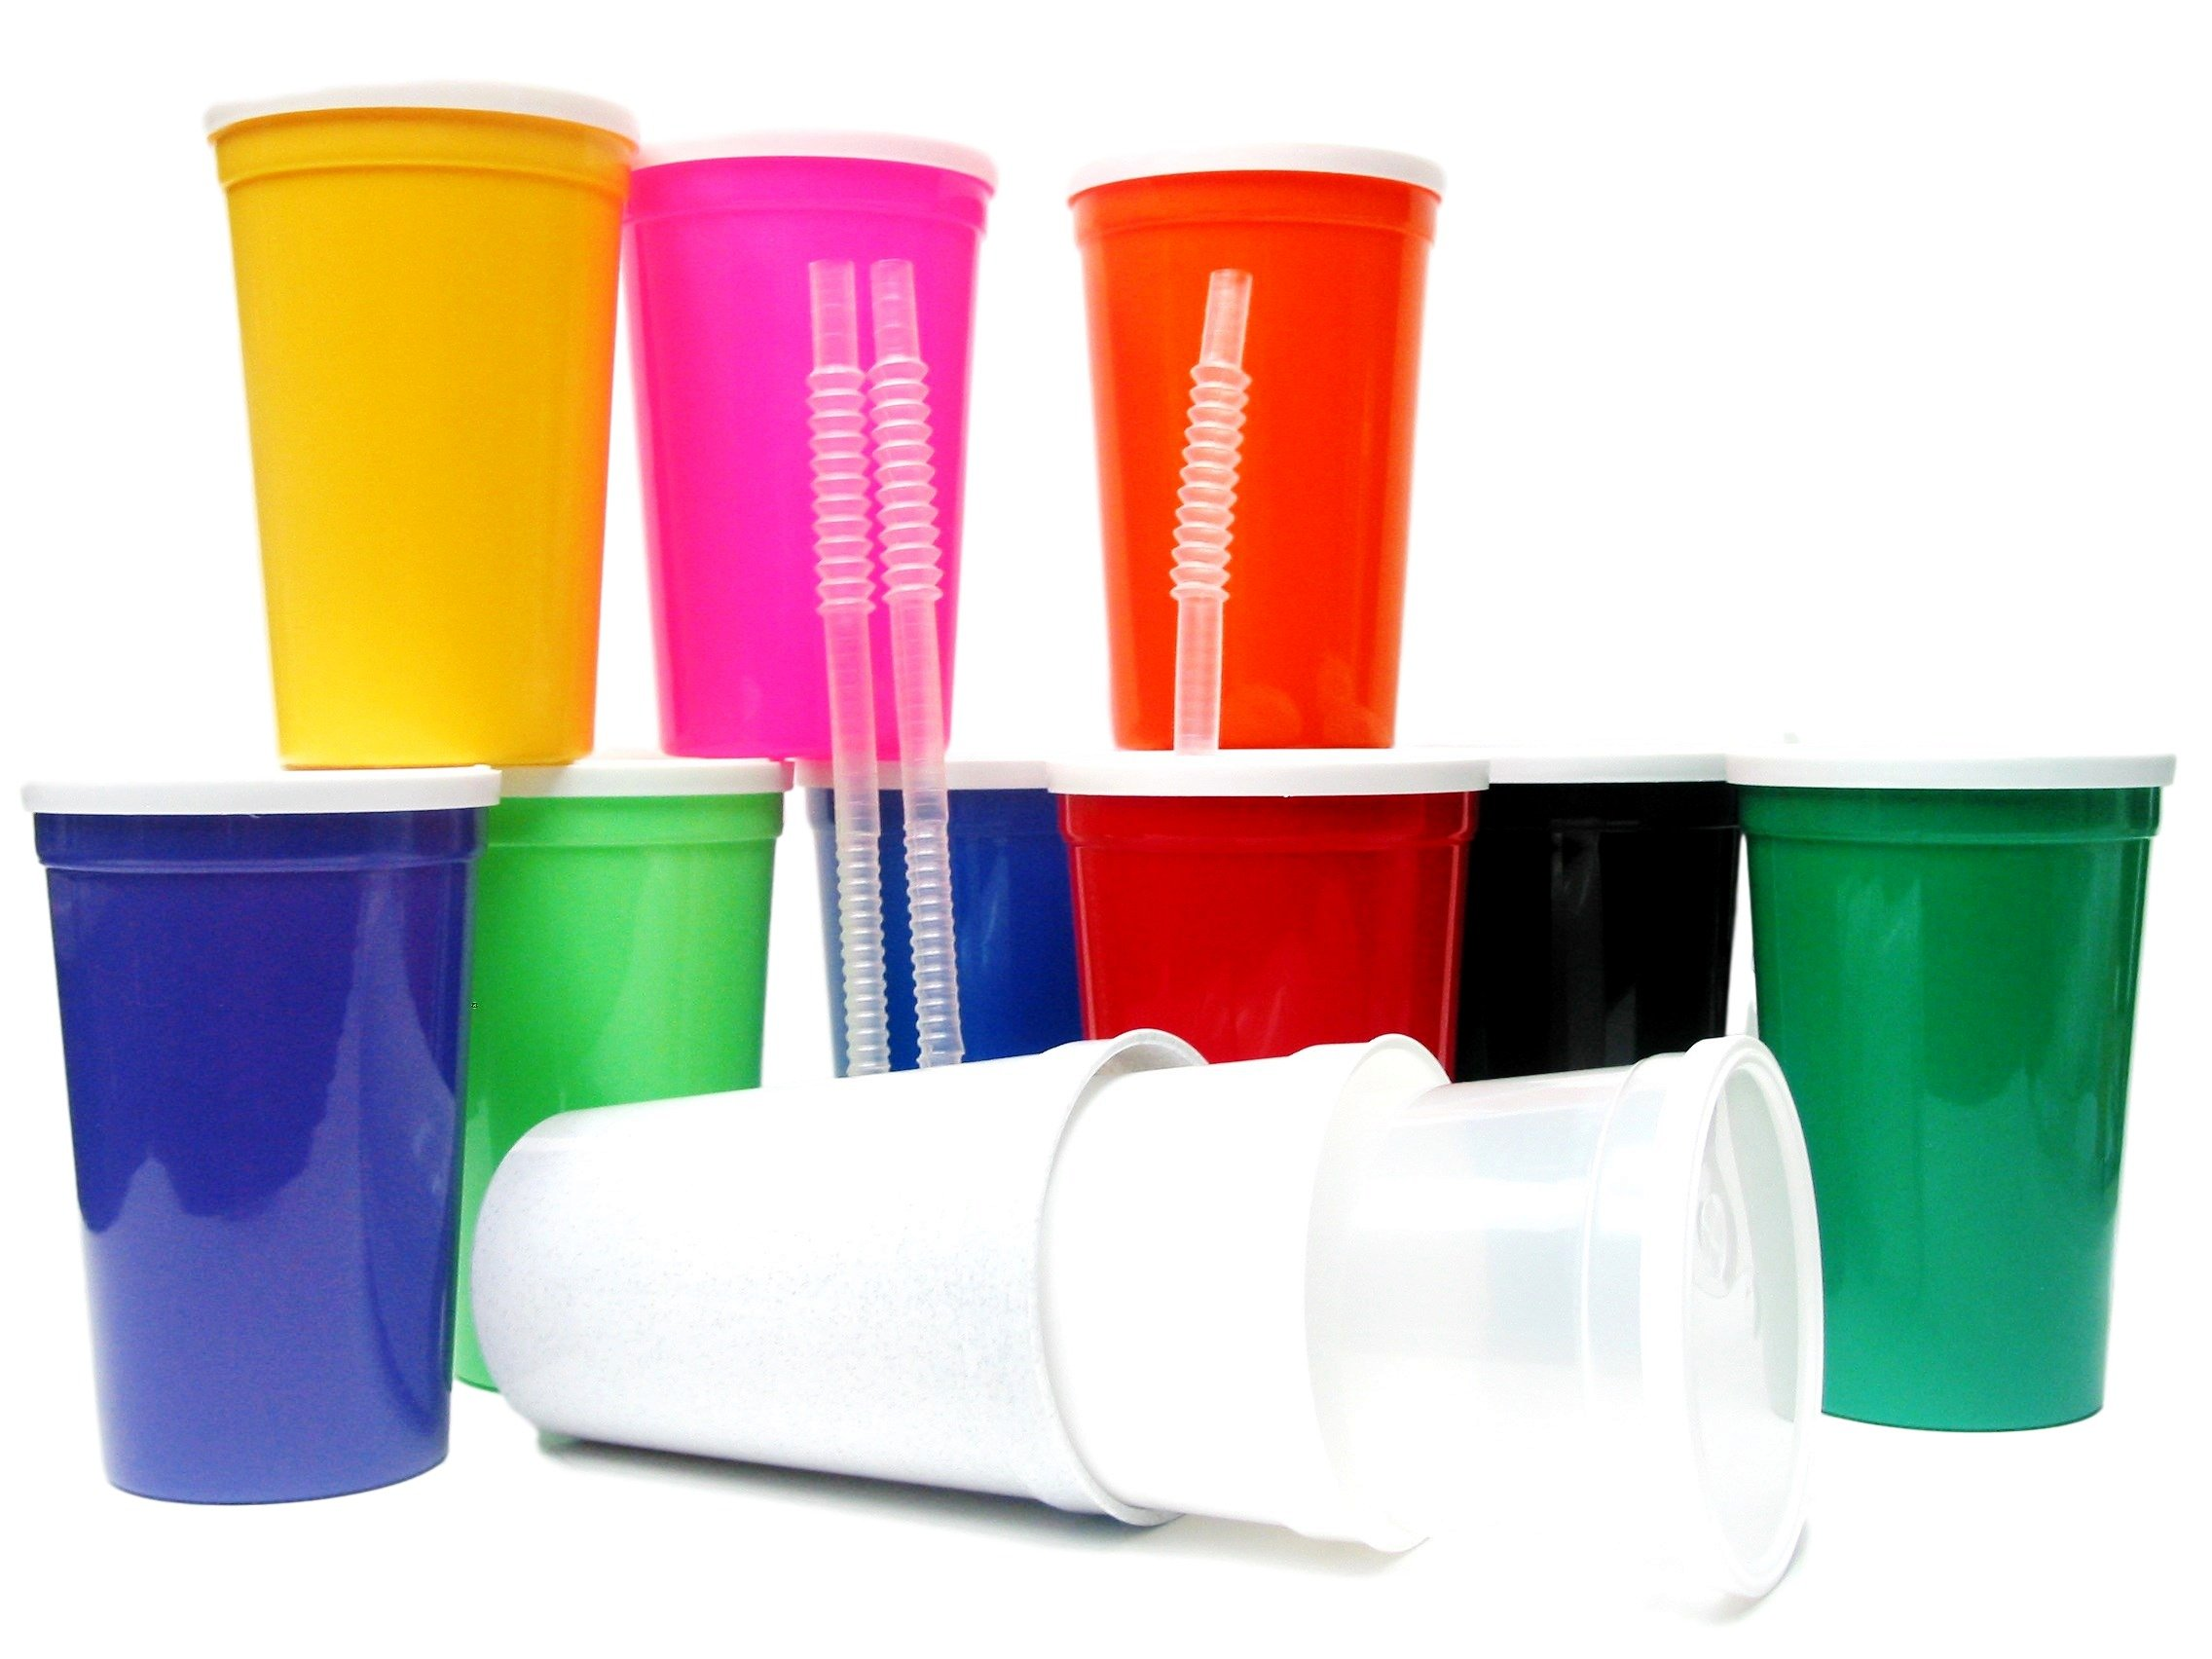 Talisman,Large 20 Ounce Plastic Drinking Glasses, Lids and Straws, 14 Pack, Mix of Colors